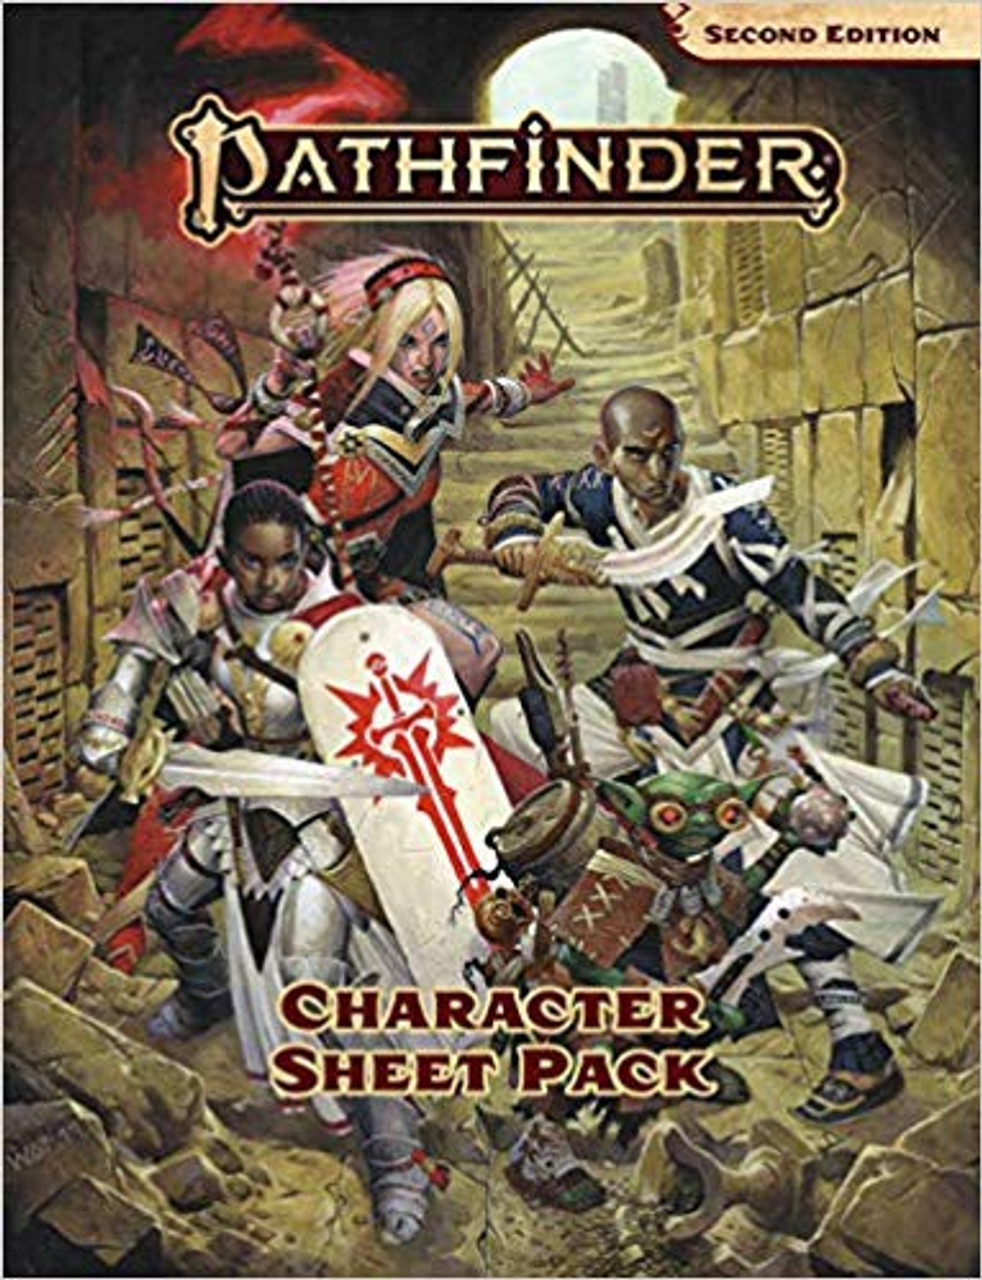 Pathfinder 2nd Edition Character Sheet Pack Role Play Accessory